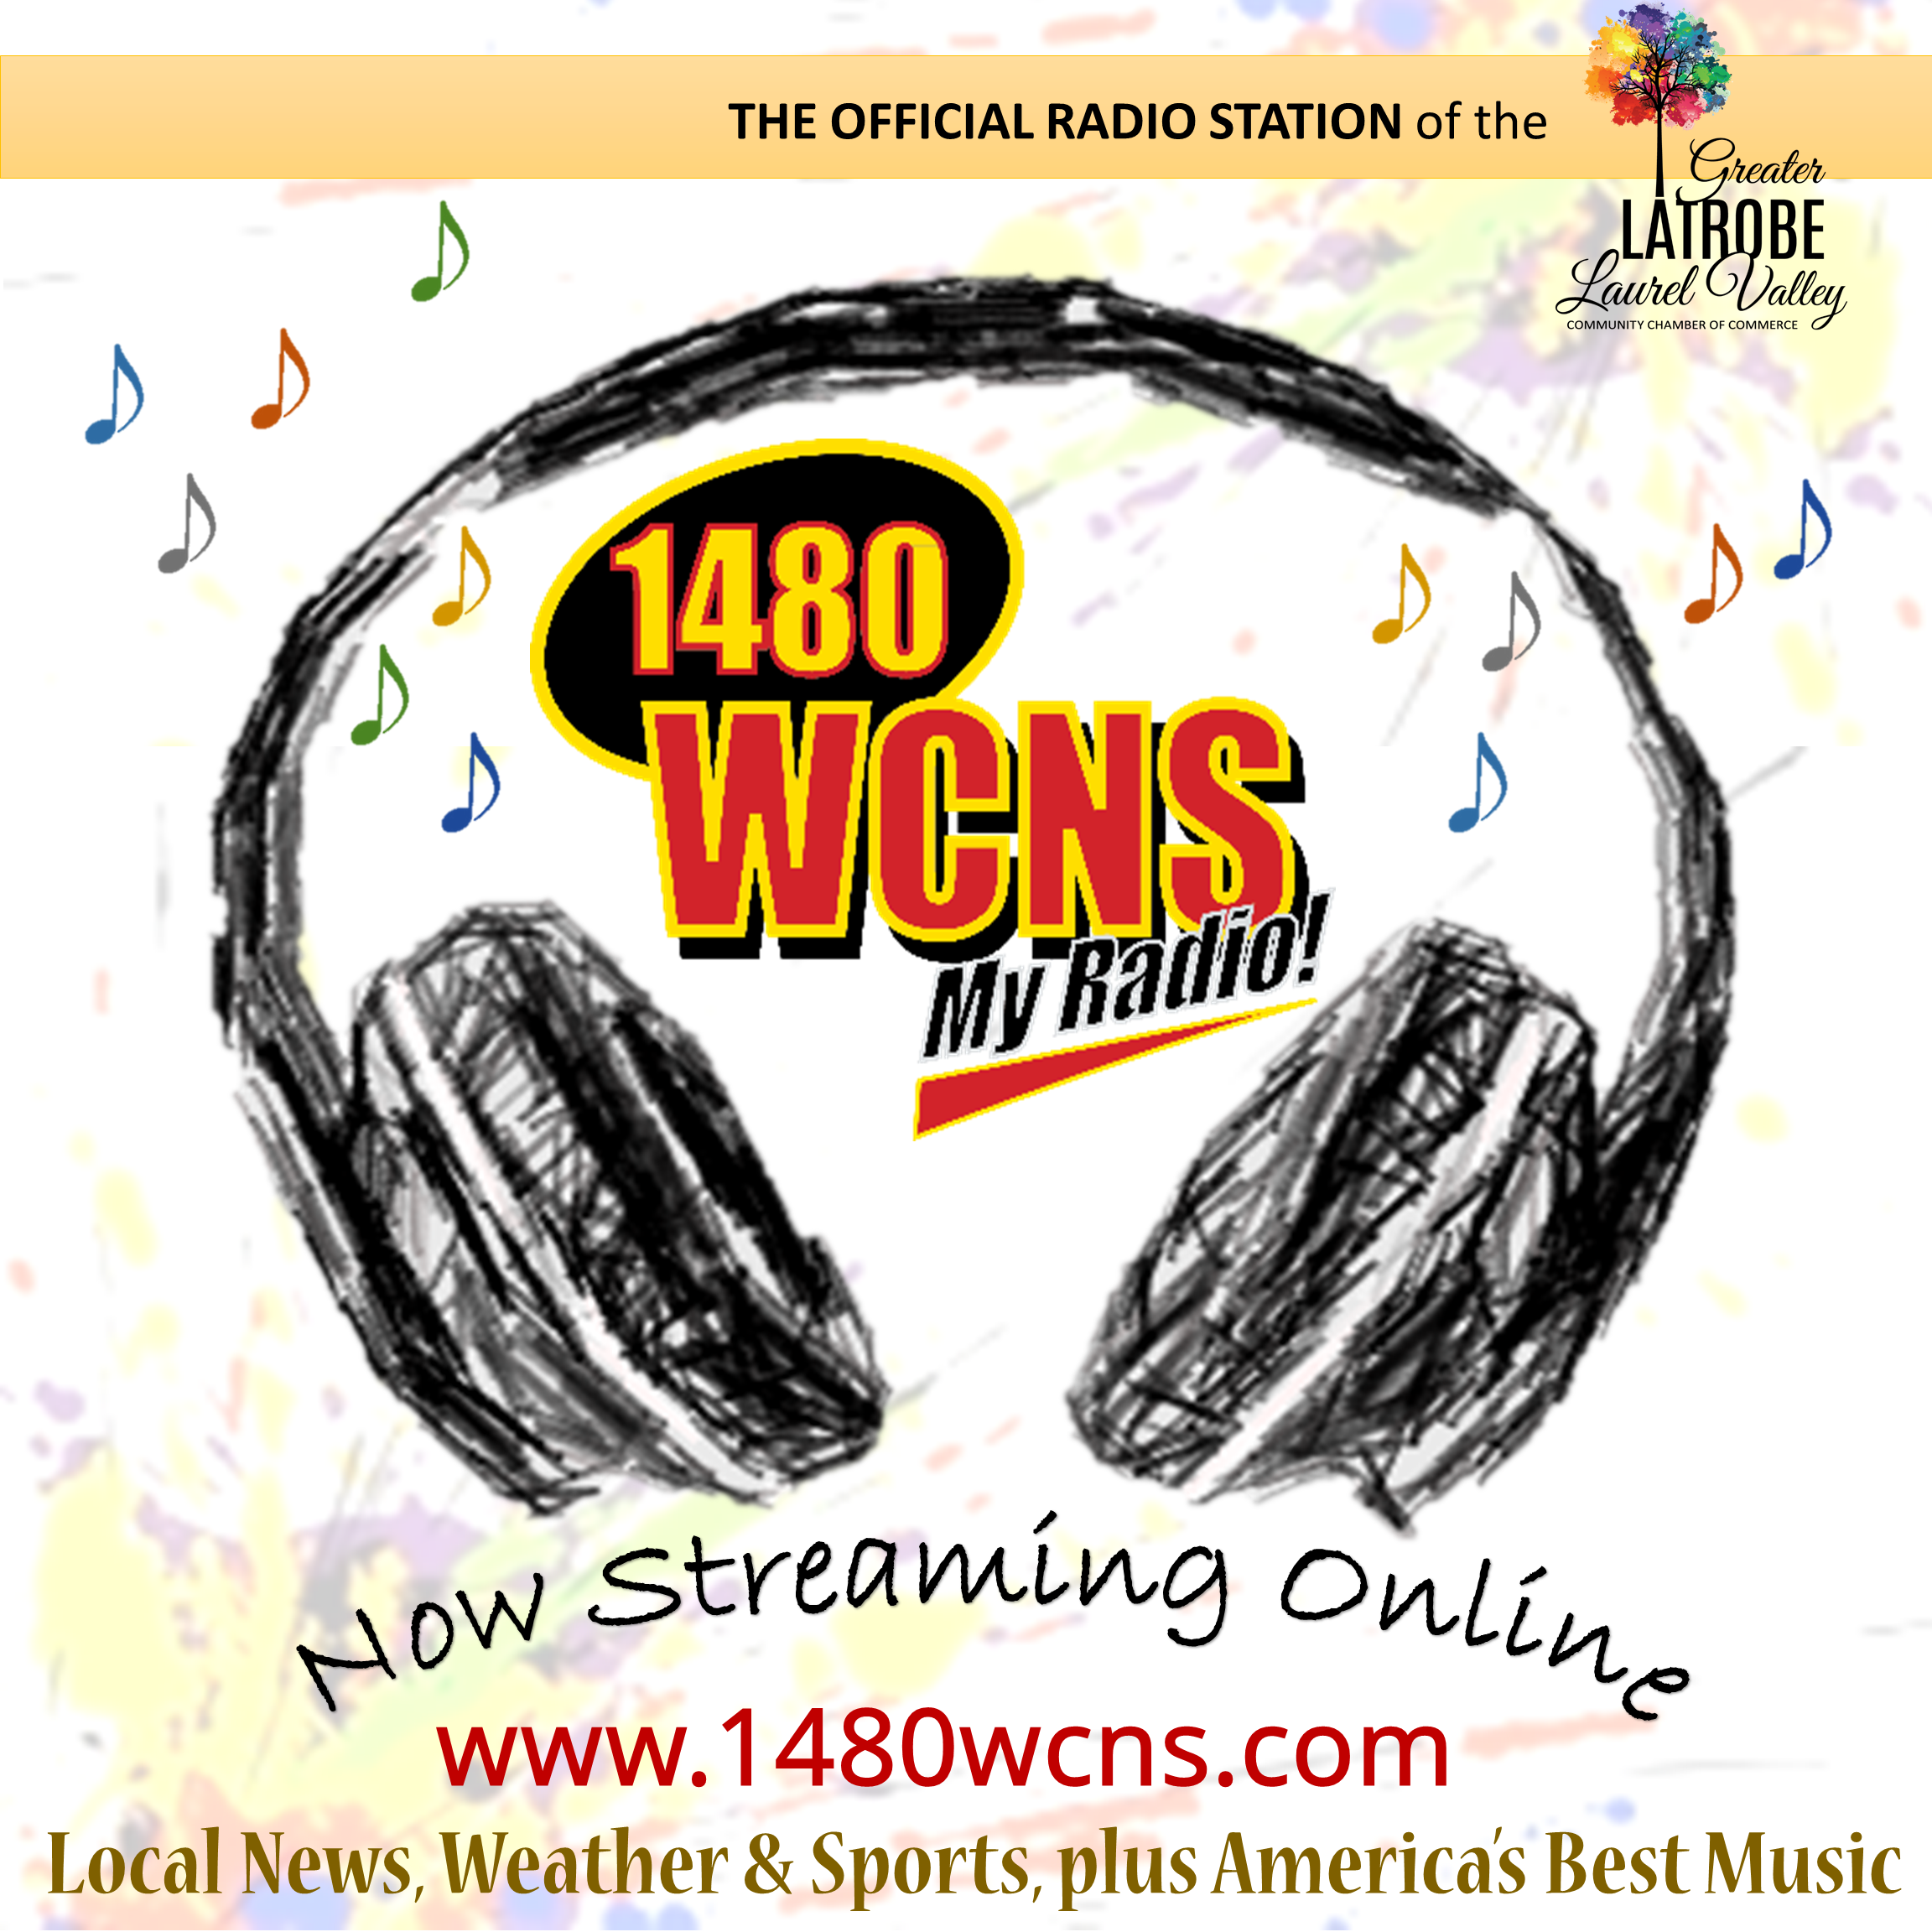 1480 WCNS the OFFICIAL Radio Station of the GLLV Chamber